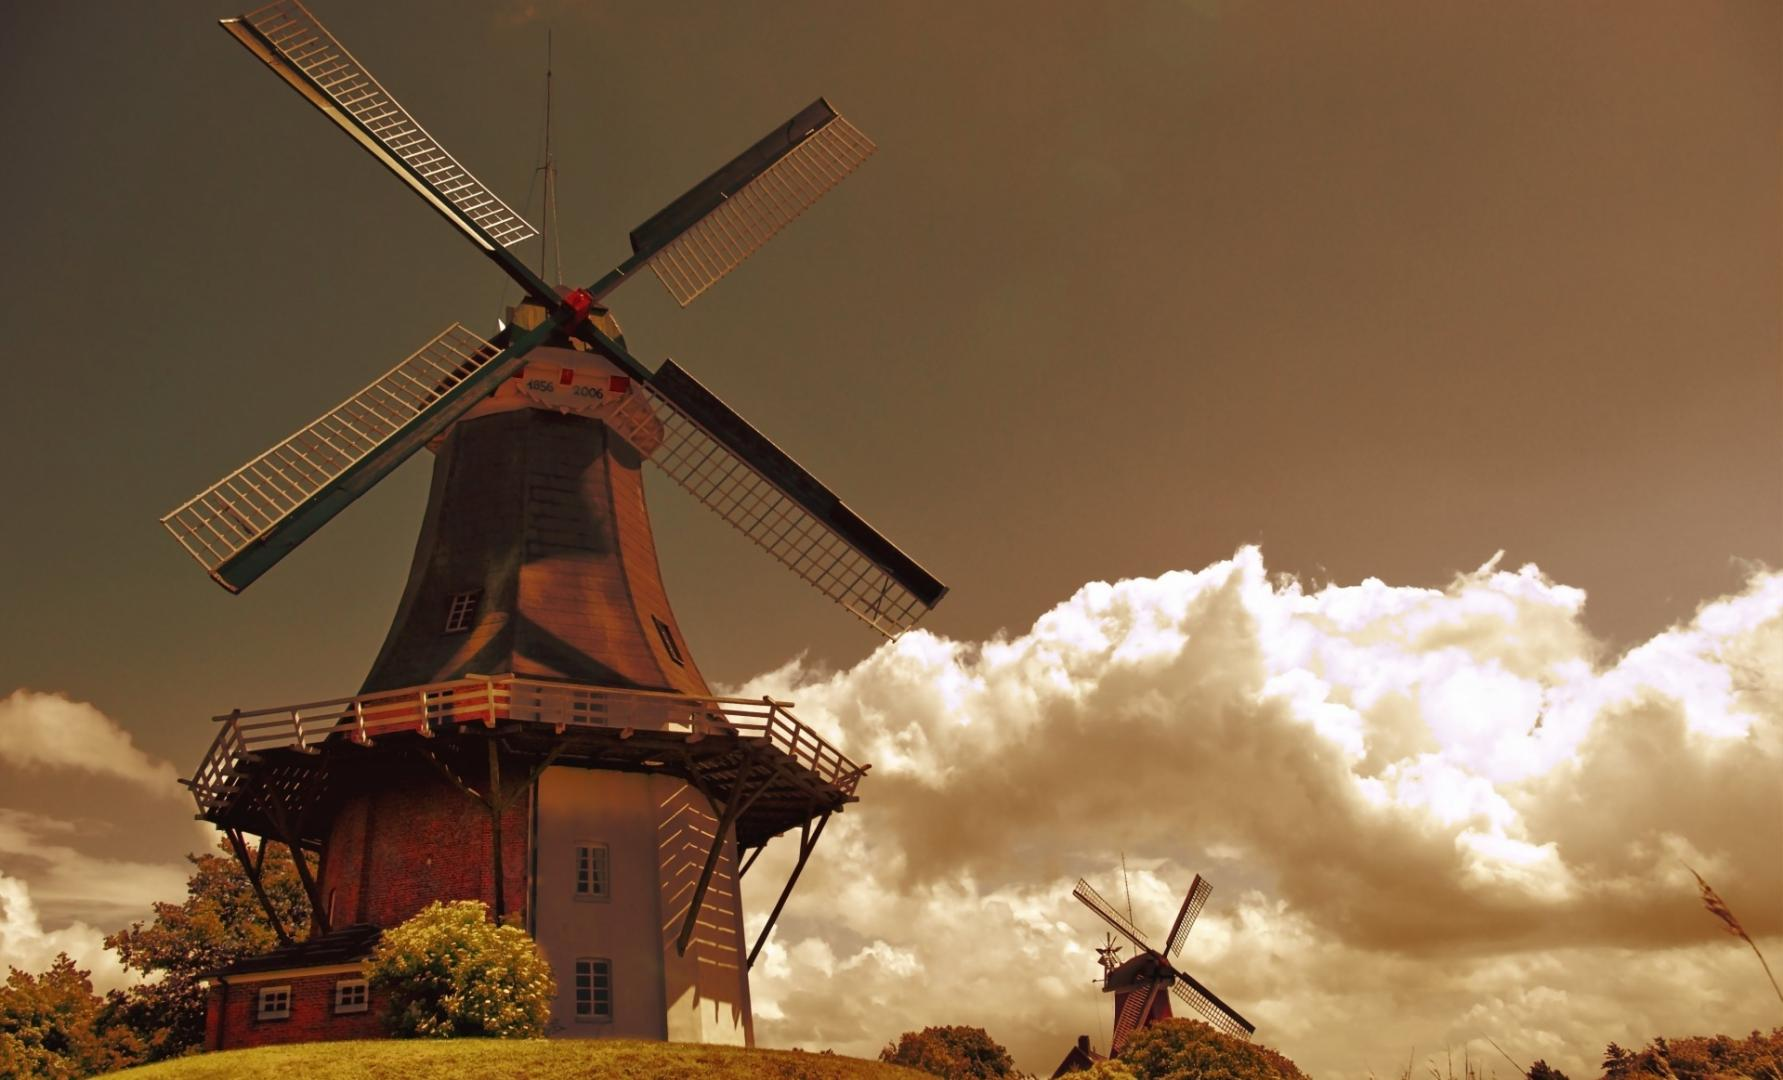 windmills_in_the_netherlands-wallpaper-1920x1200.jpg